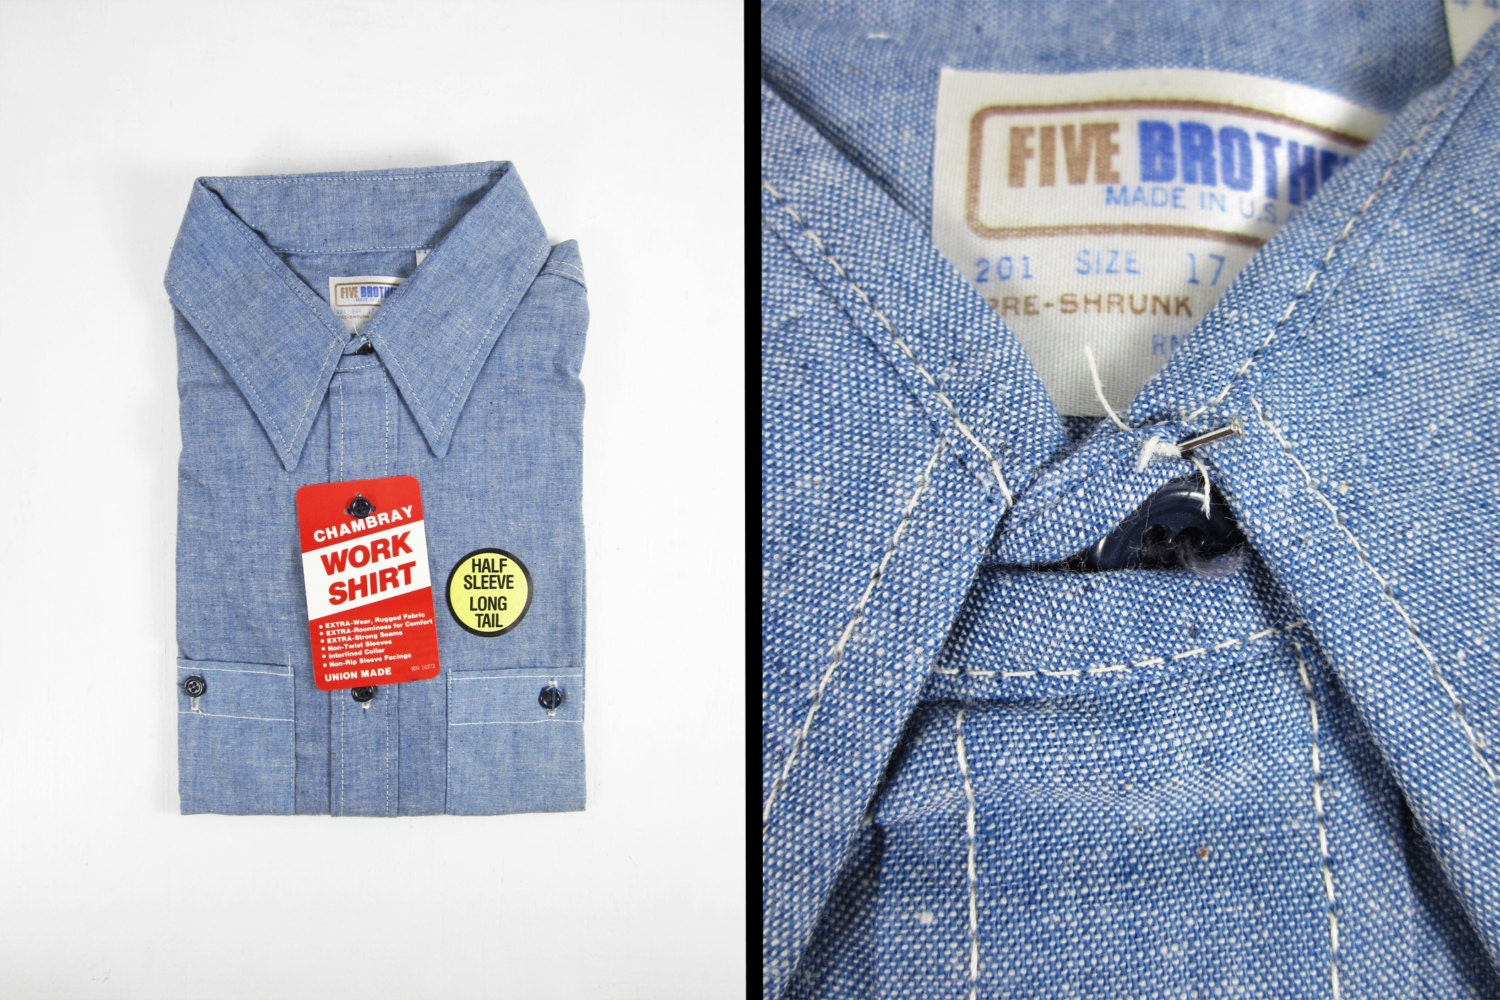 Vintage Five Brother Chambray Shirt Nos 70s Blue Cotton Made